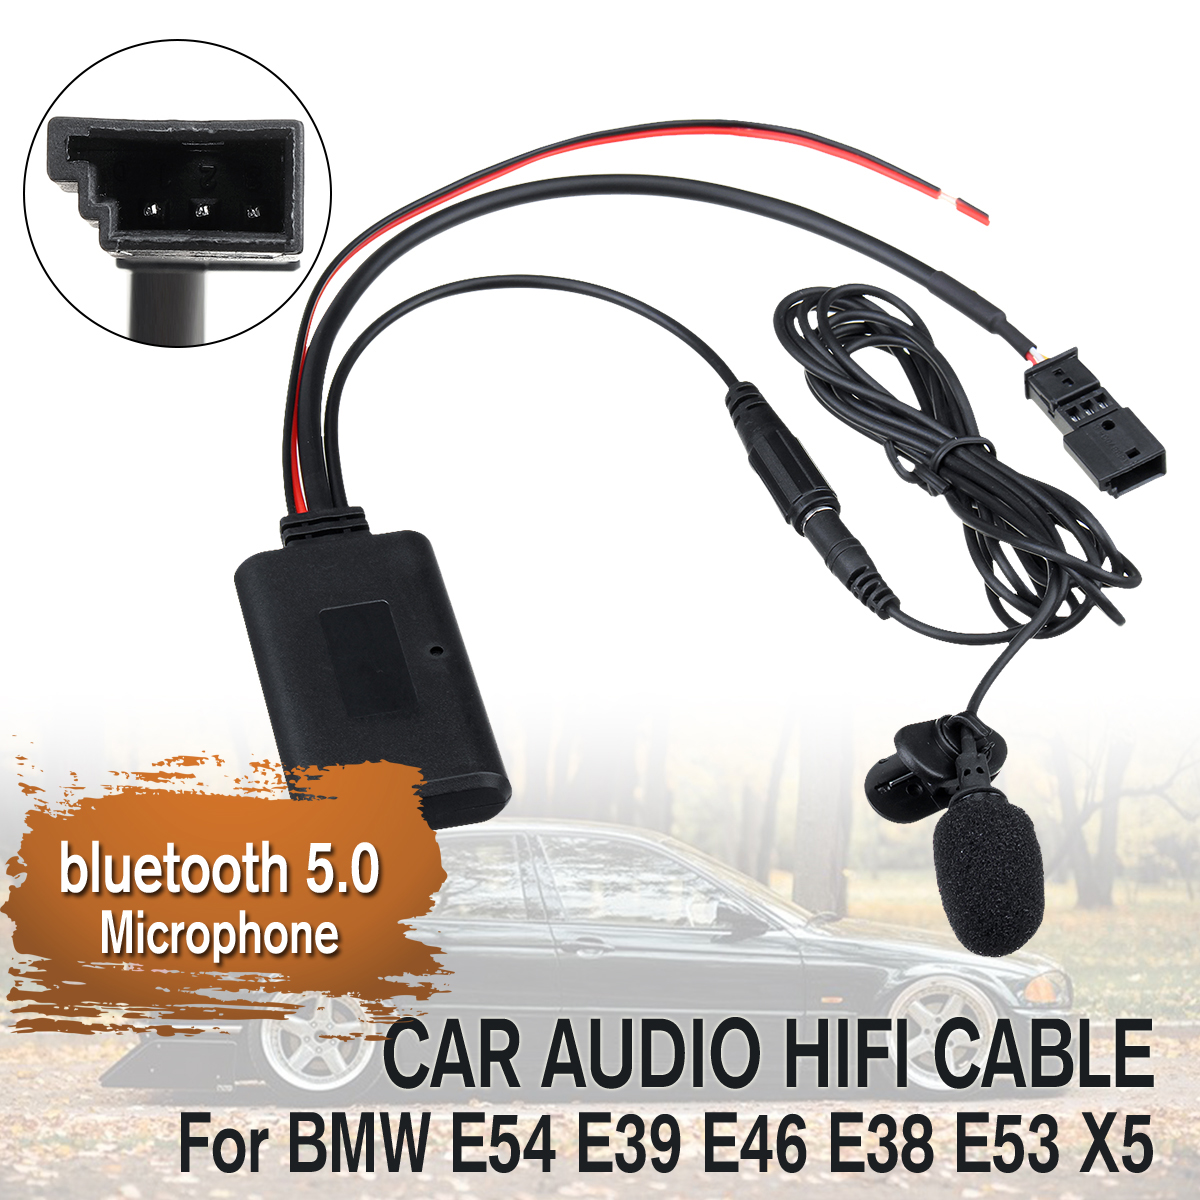 12V Car Audio Bluetooth 5.0 HIFI Cable Adaptor Microphone For BMW E54 E39 E46 E38 E53 X5